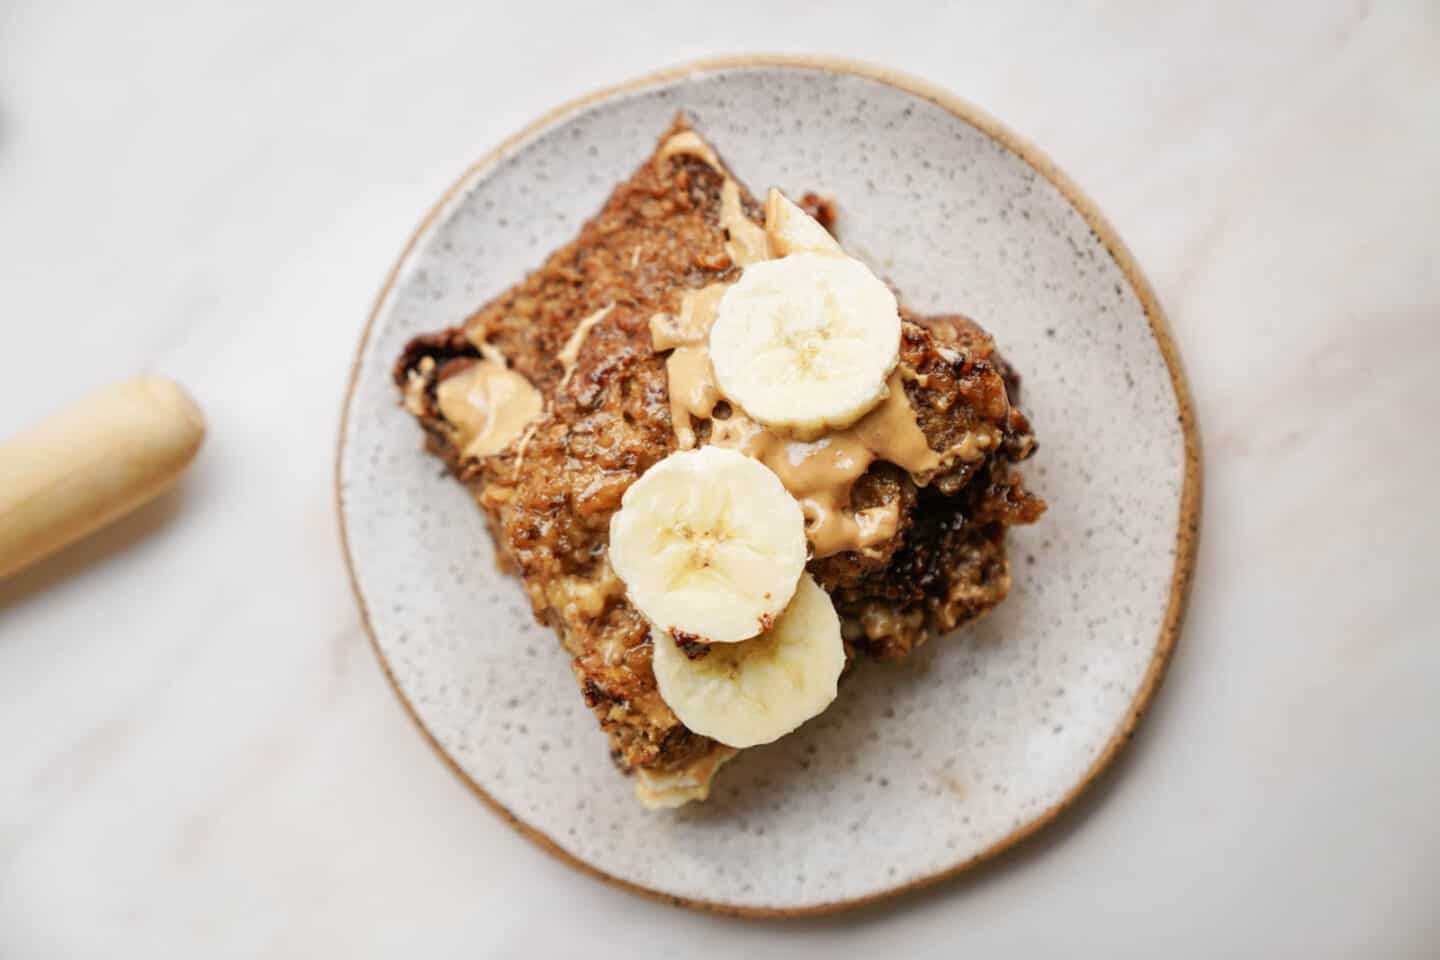 Vegan baked oatmeal with bananas cut on top.